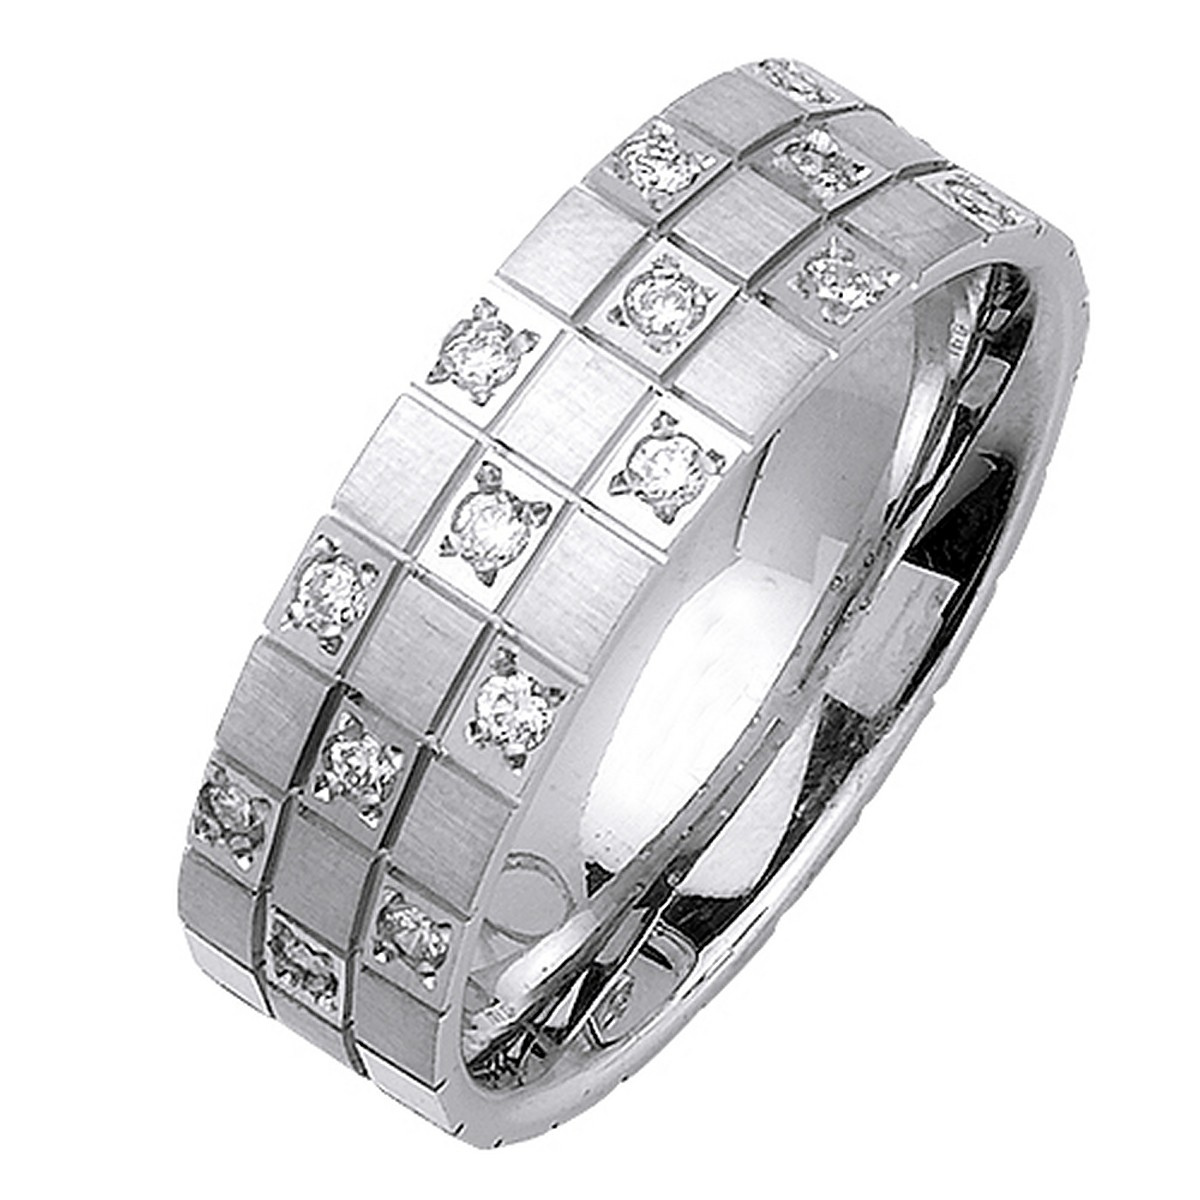 mens wedding rings clearance overstock mens wedding bands 7mm 18K White Gold Men s Diamond Ring 32CT